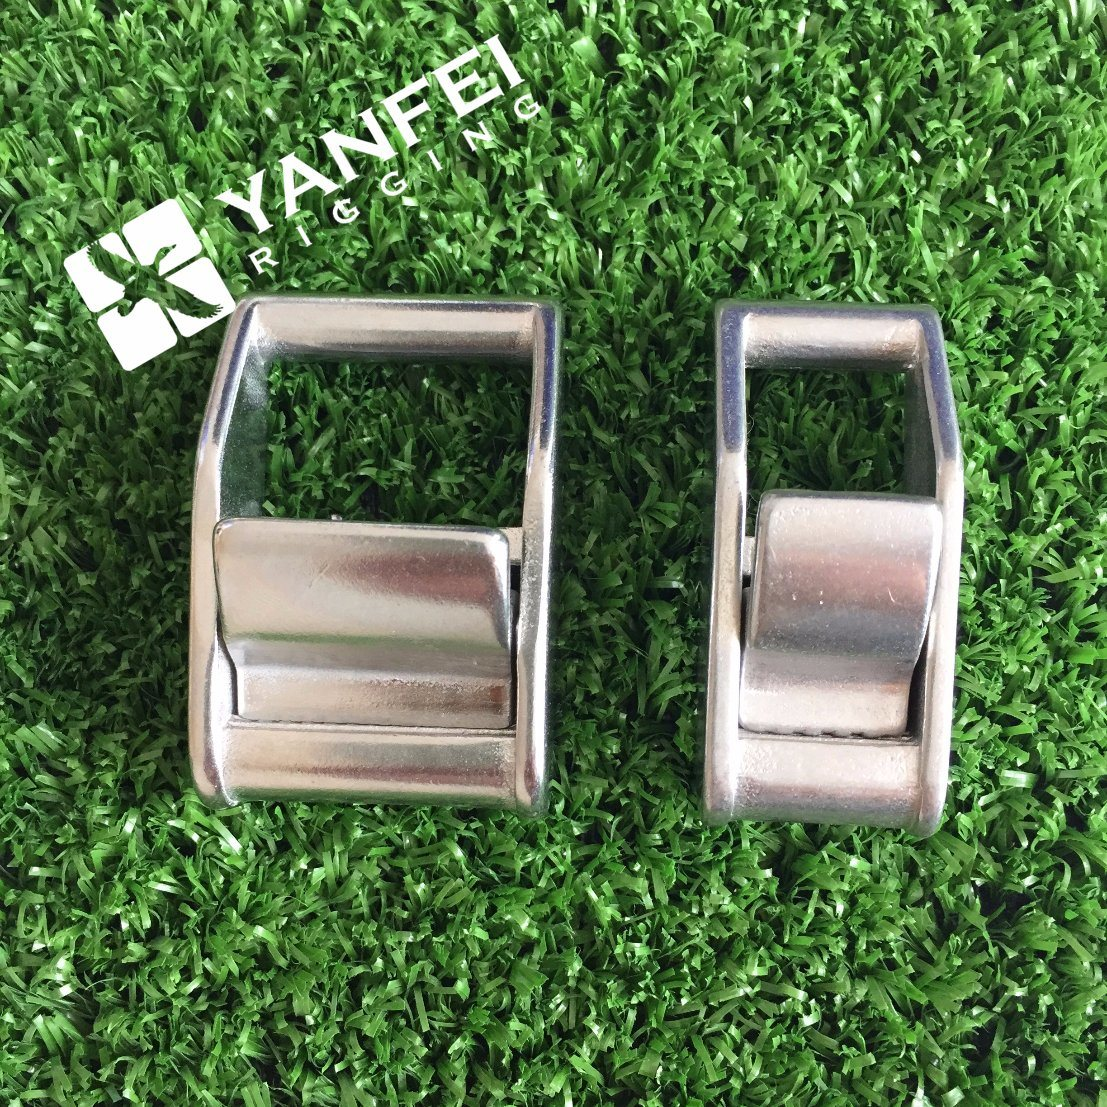 Yanfei Rigging 1inch Heavy Duty Stainless Steel Cam Buckle